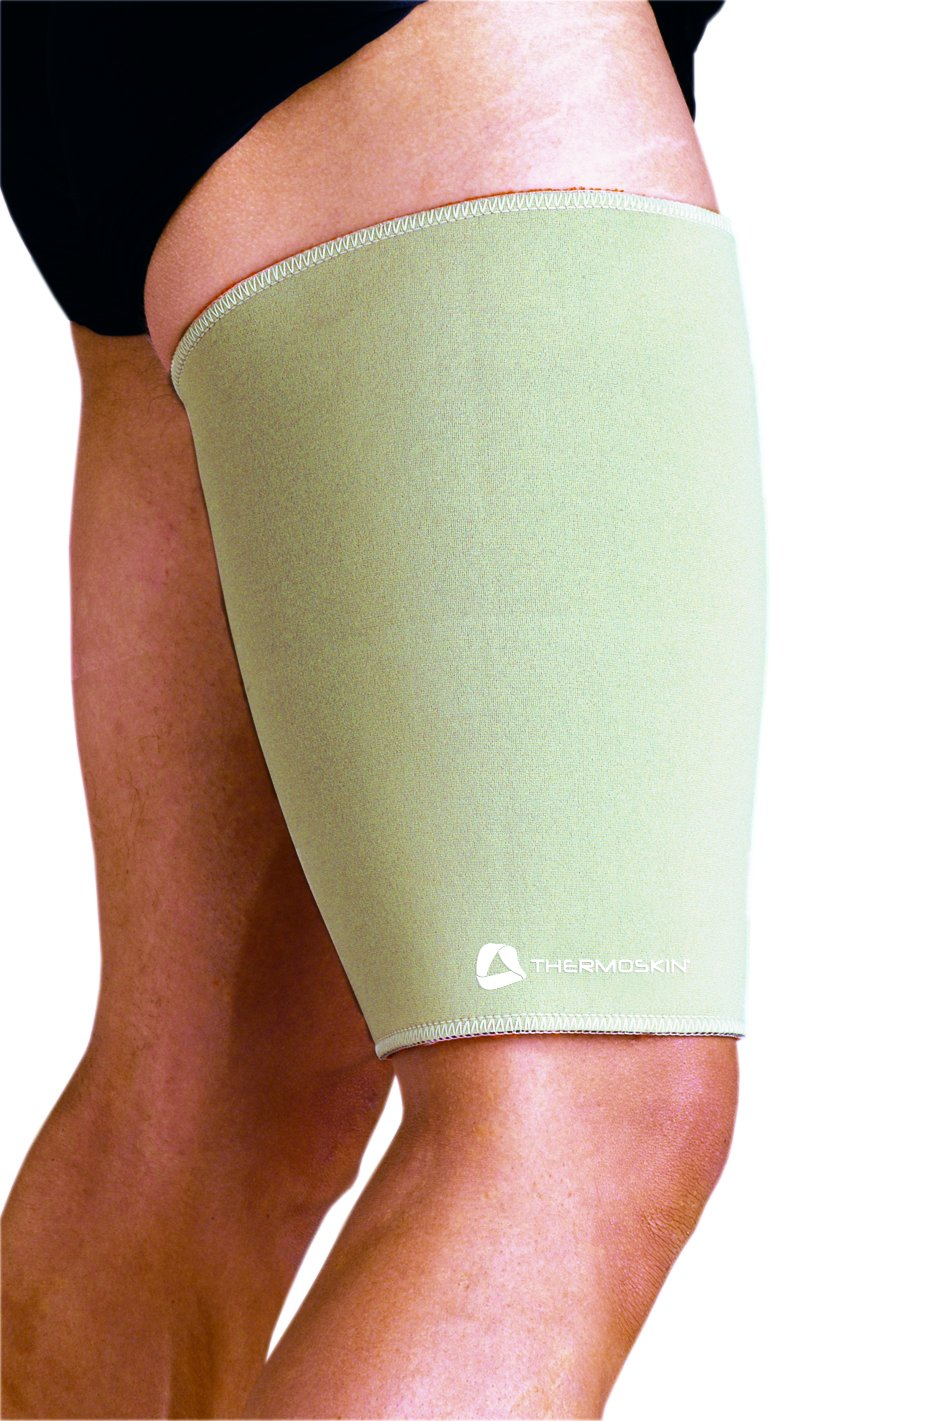 Thermoskin Thigh and Hamstring Support, Beige, Medium by Thermoskin